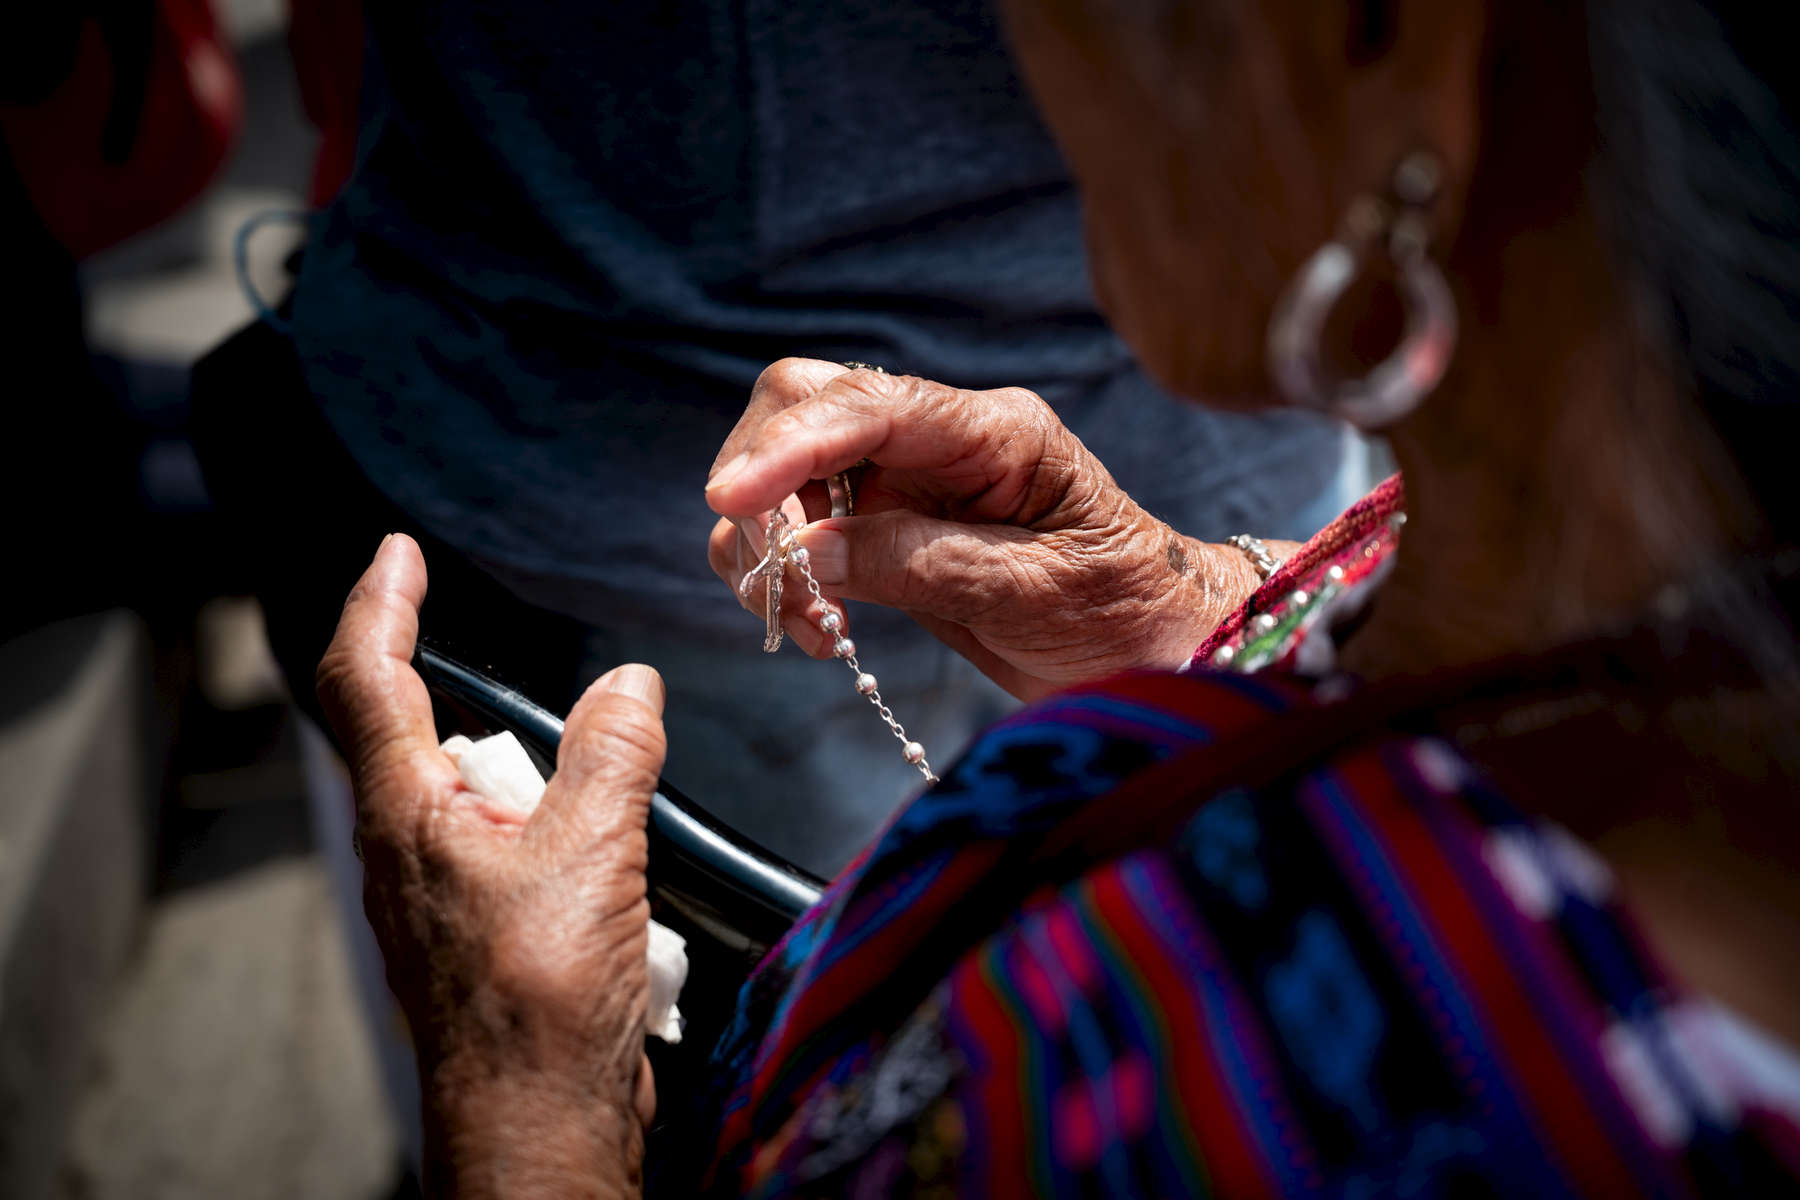 An indigenous Mayan woman clutches her rosary at the first Station of the Cross on Good Friday in Panajachel, Guatemala.